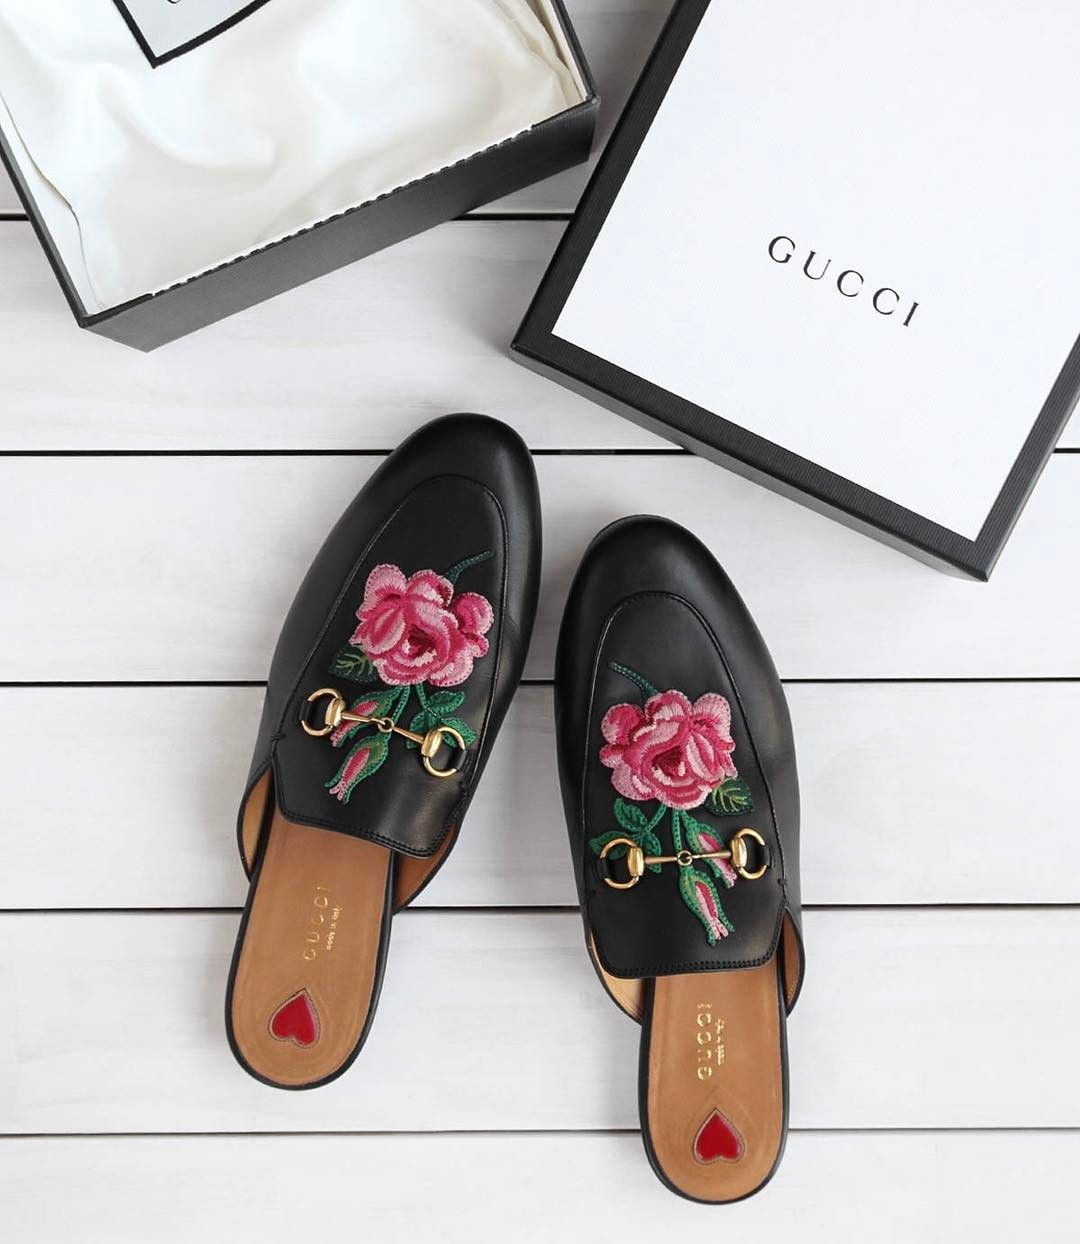 Gucci | Loafers | White | Flowers